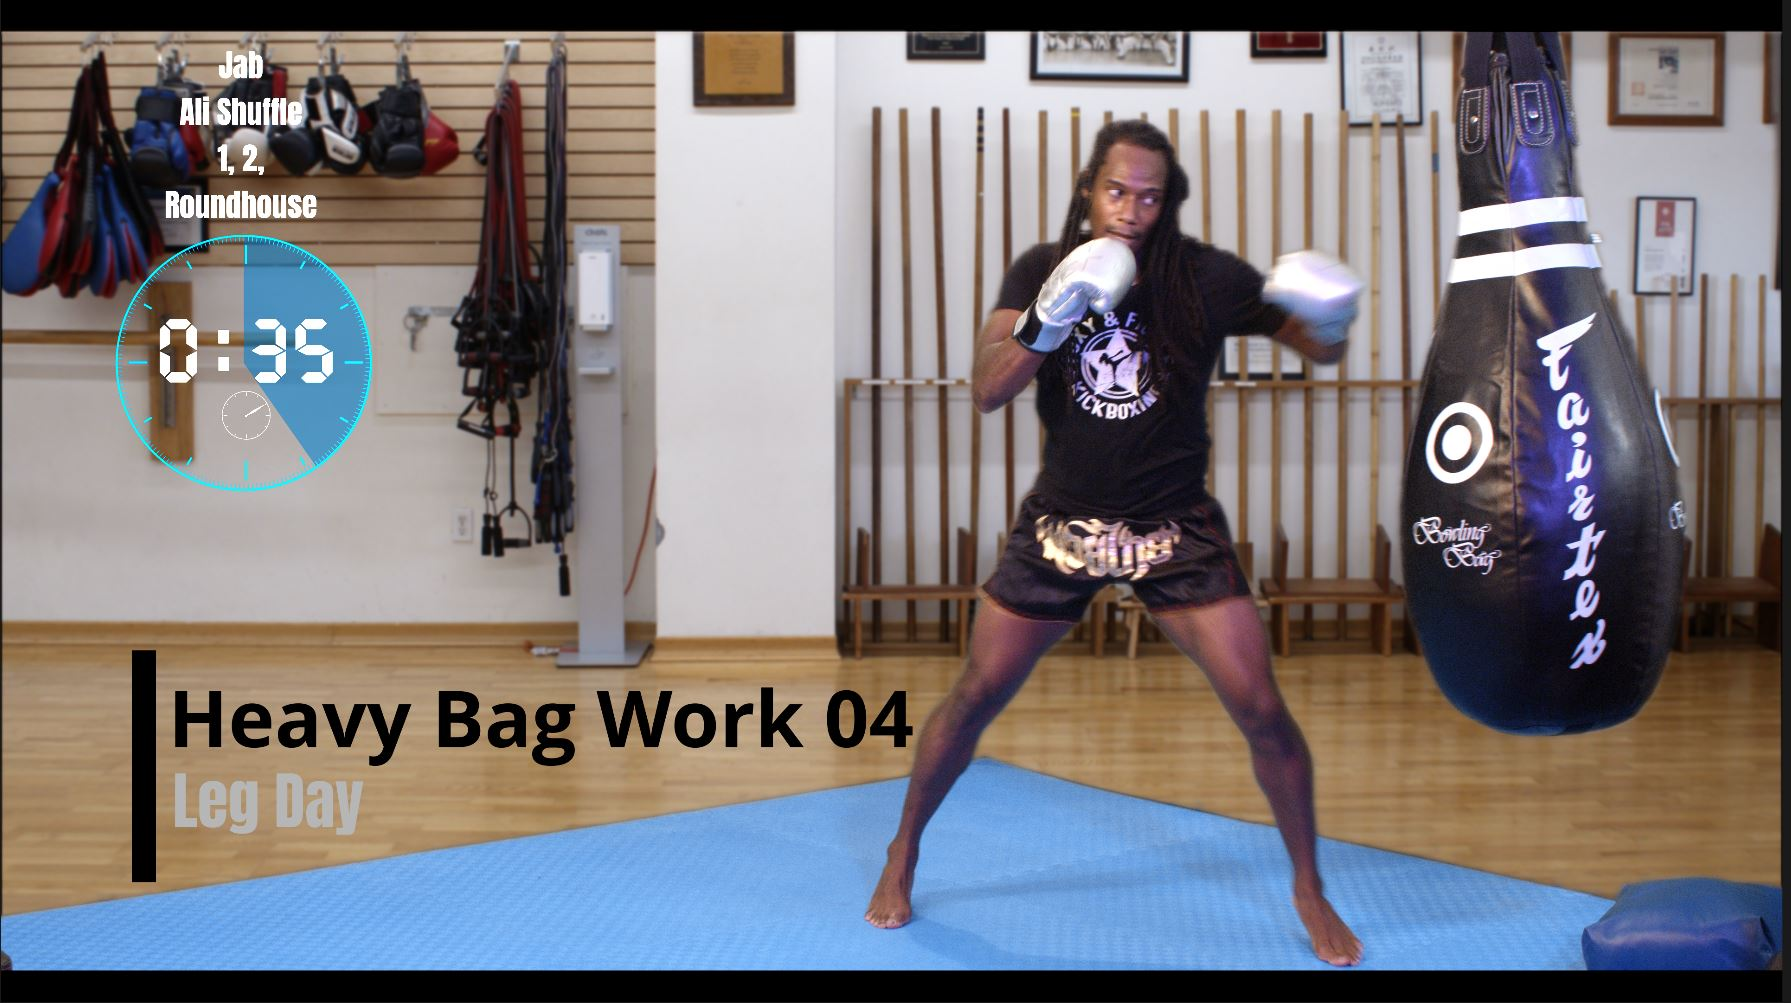 Heavy Bag Work 04 Leg Day